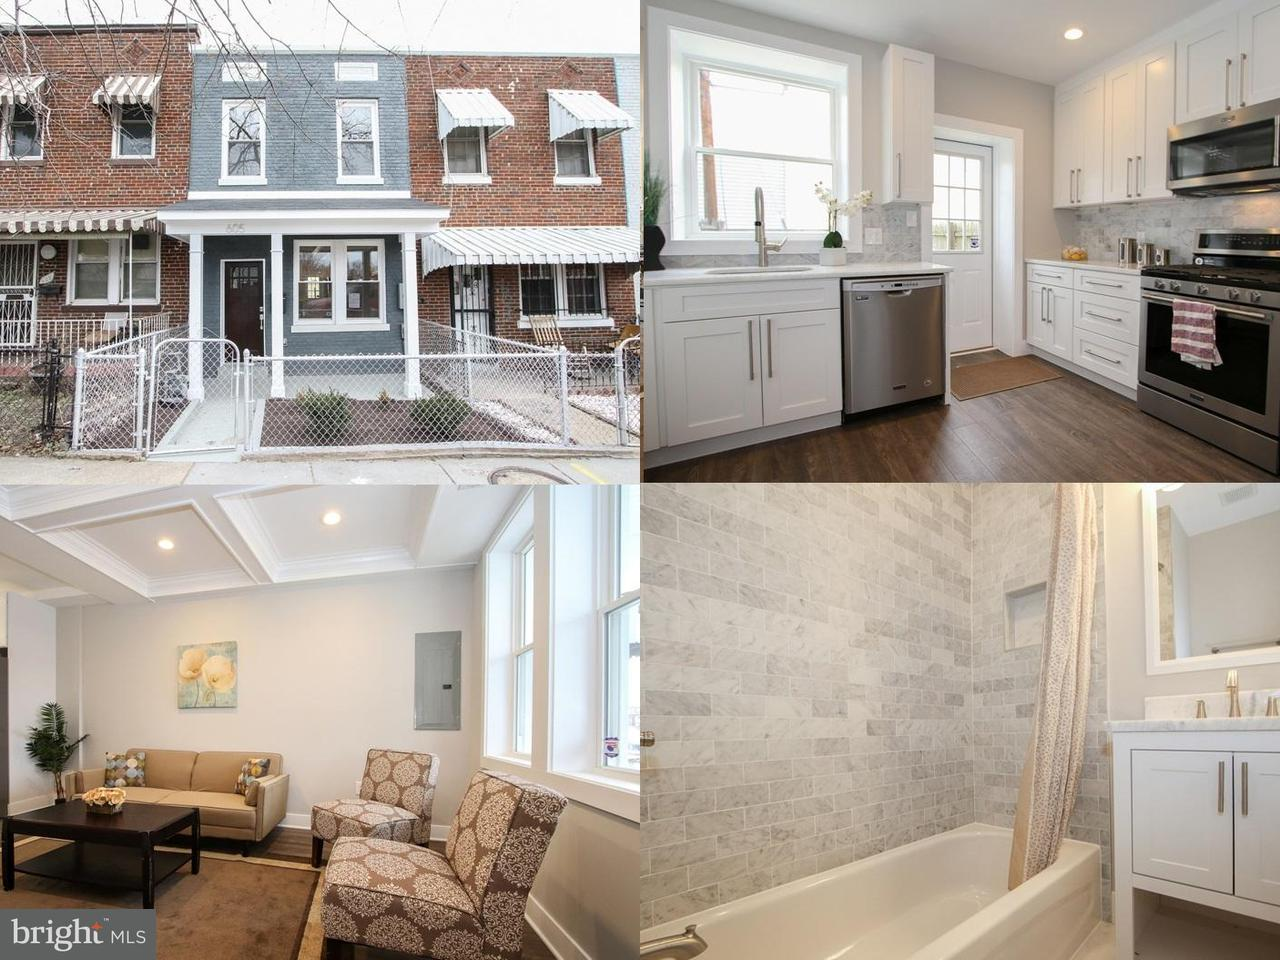 Townhouse for Sale at 605 18th St Ne 605 18th St Ne Washington, District Of Columbia 20002 United States